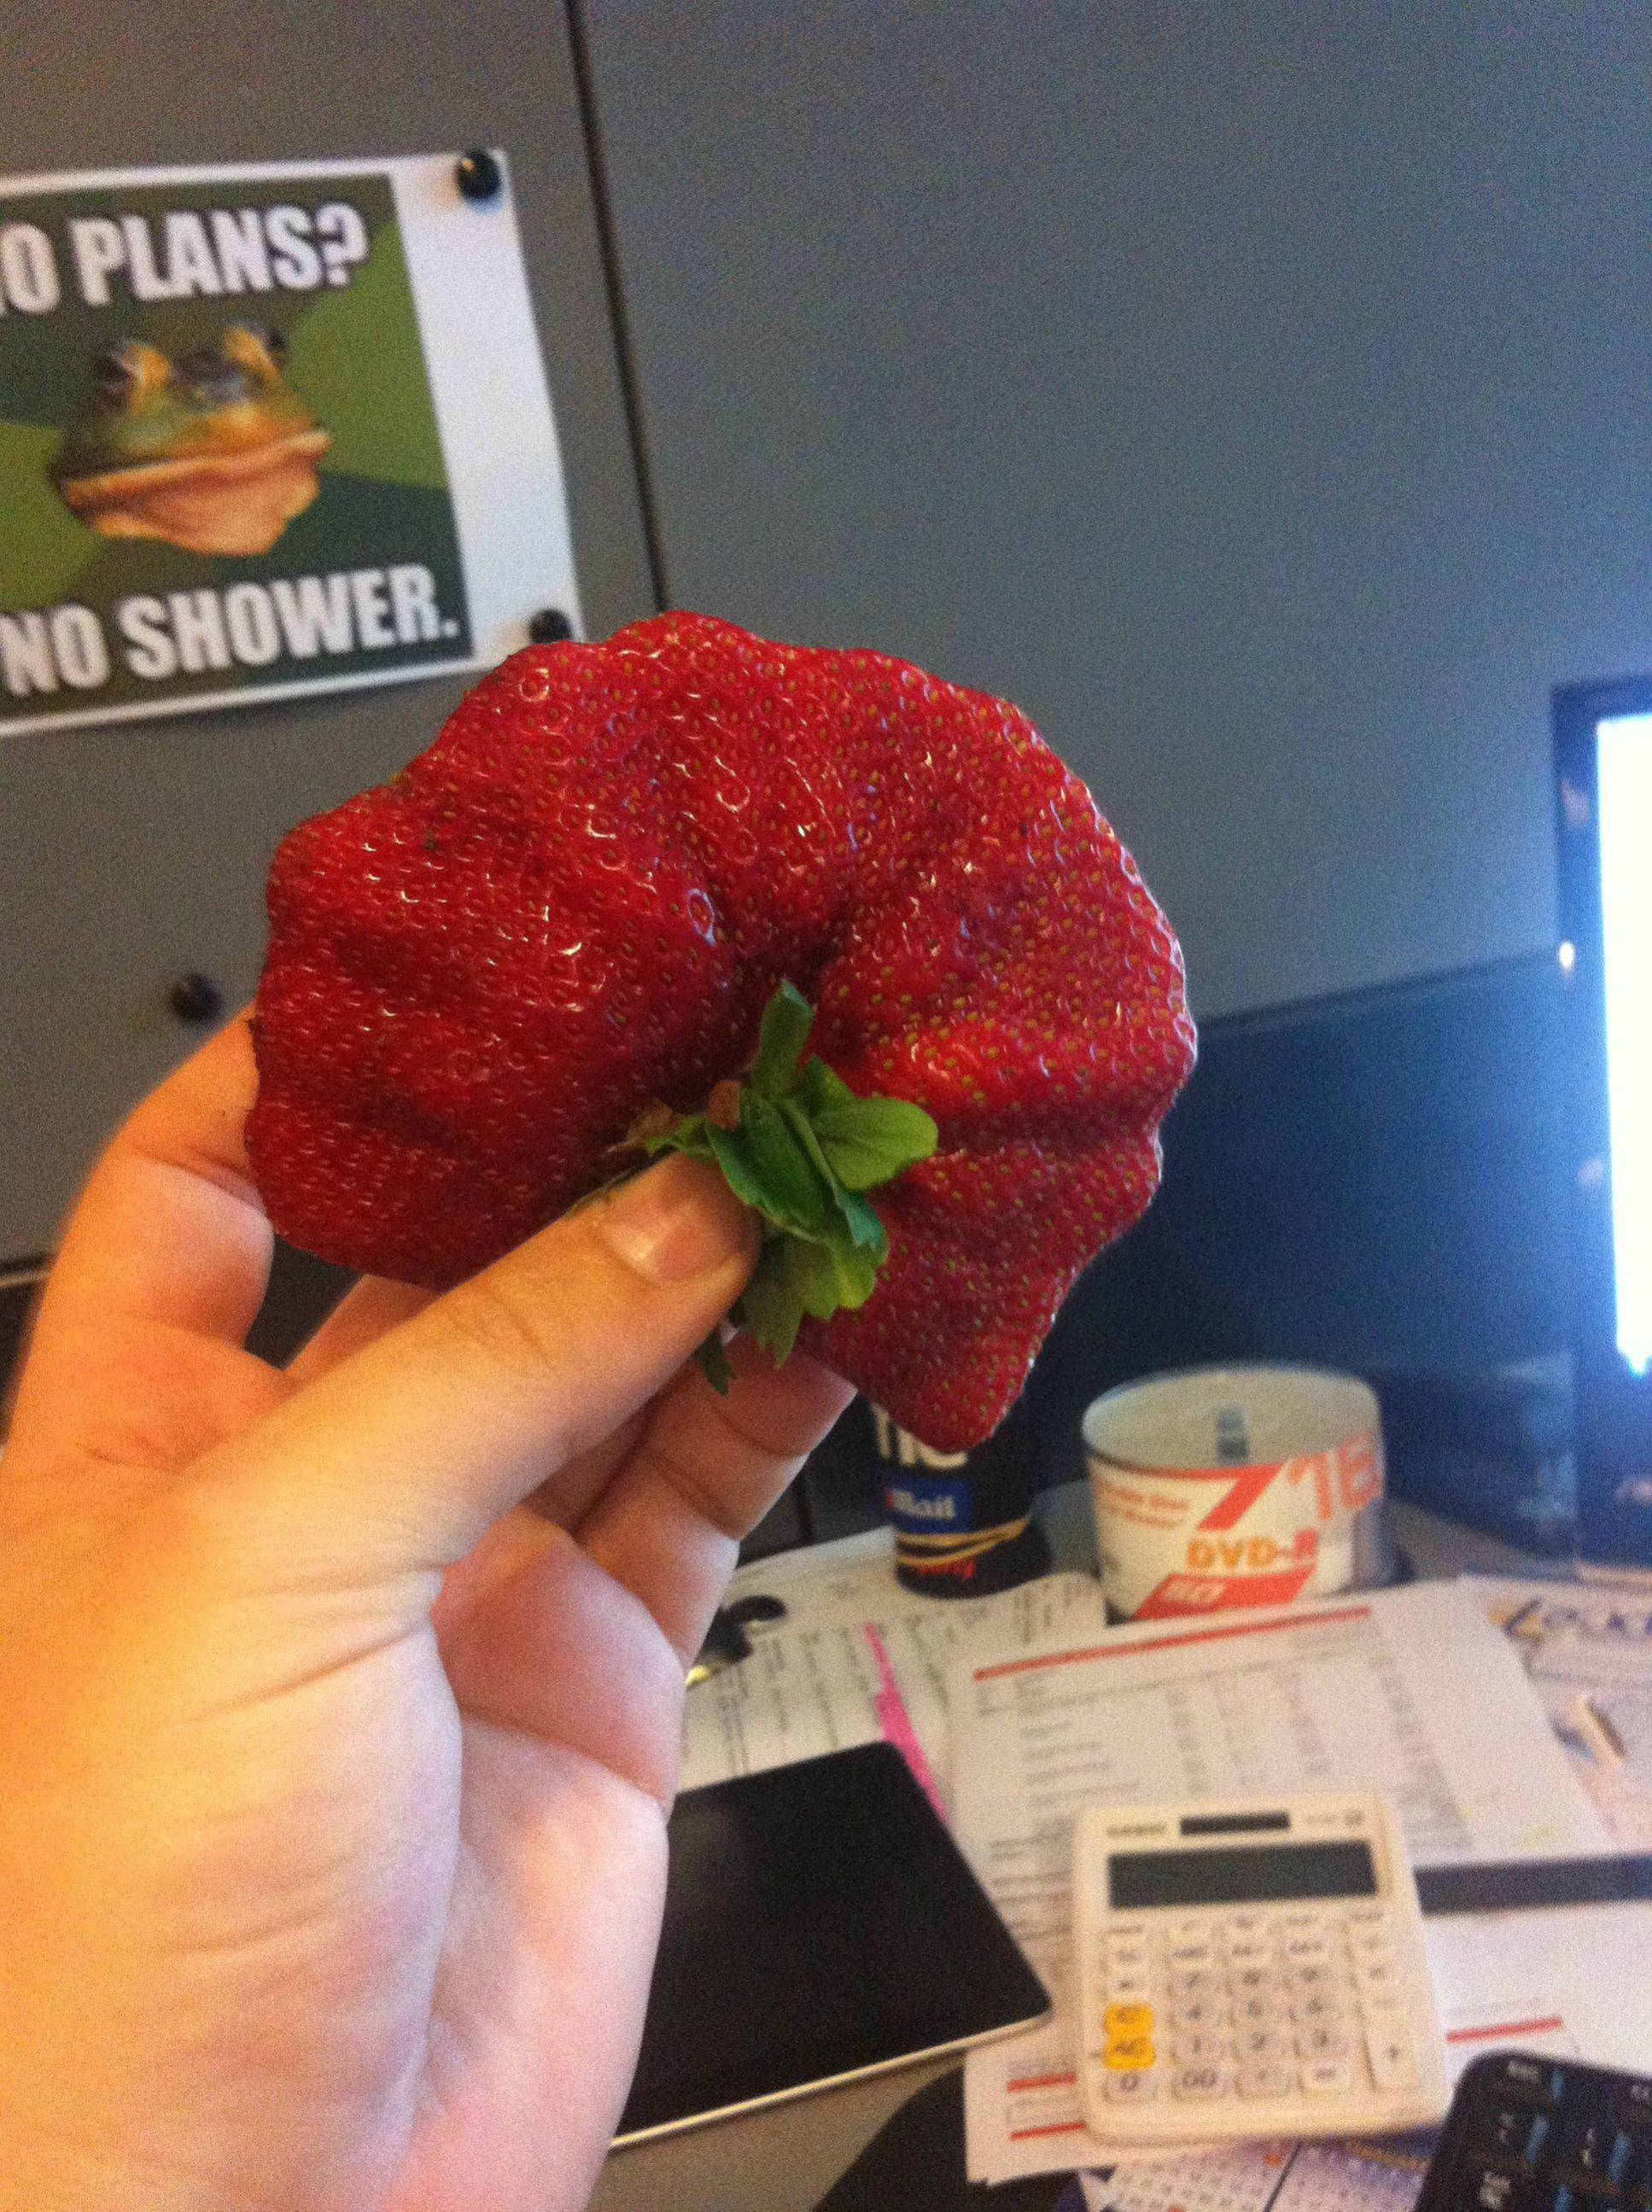 Biggest Strawbery EVER